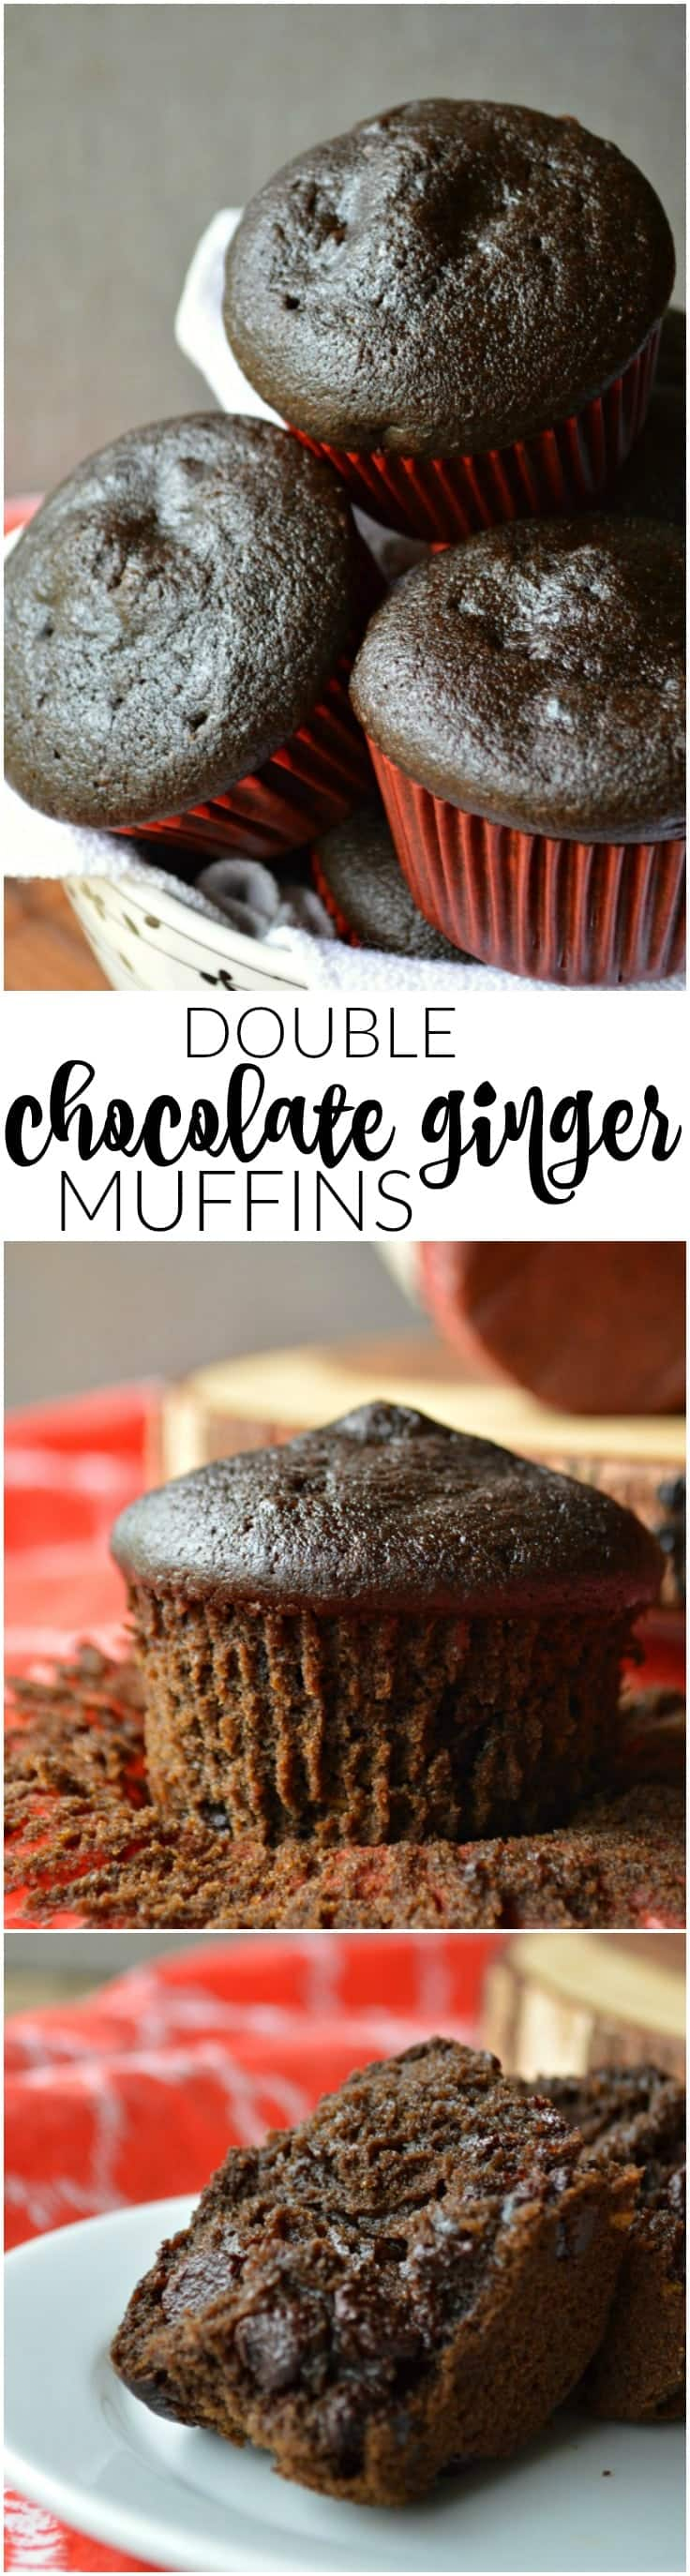 Soft Double Chocolate Muffins with a hint of ginger zing! Perfect for holidays